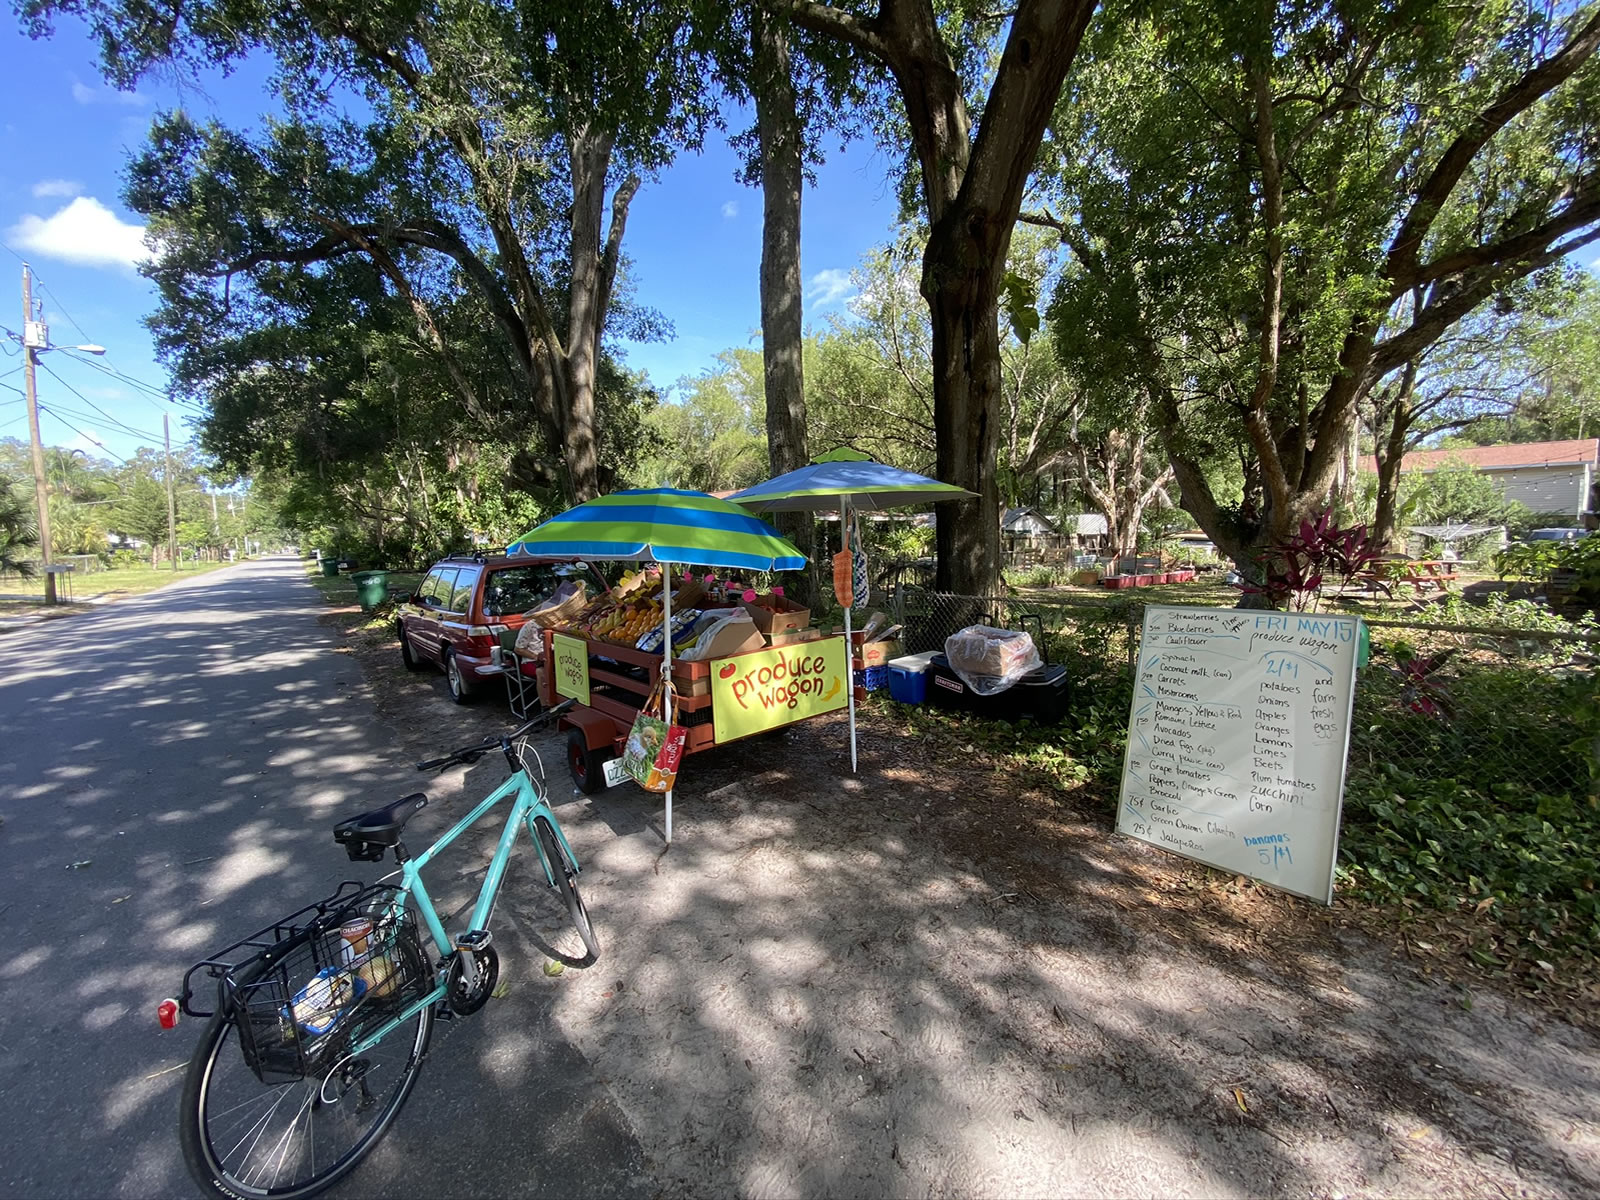 Wide-angle photo of the Produce Wagon from its right side, with Joey's light blue bicycle in the foreground, and their whiteboard price list to the right.